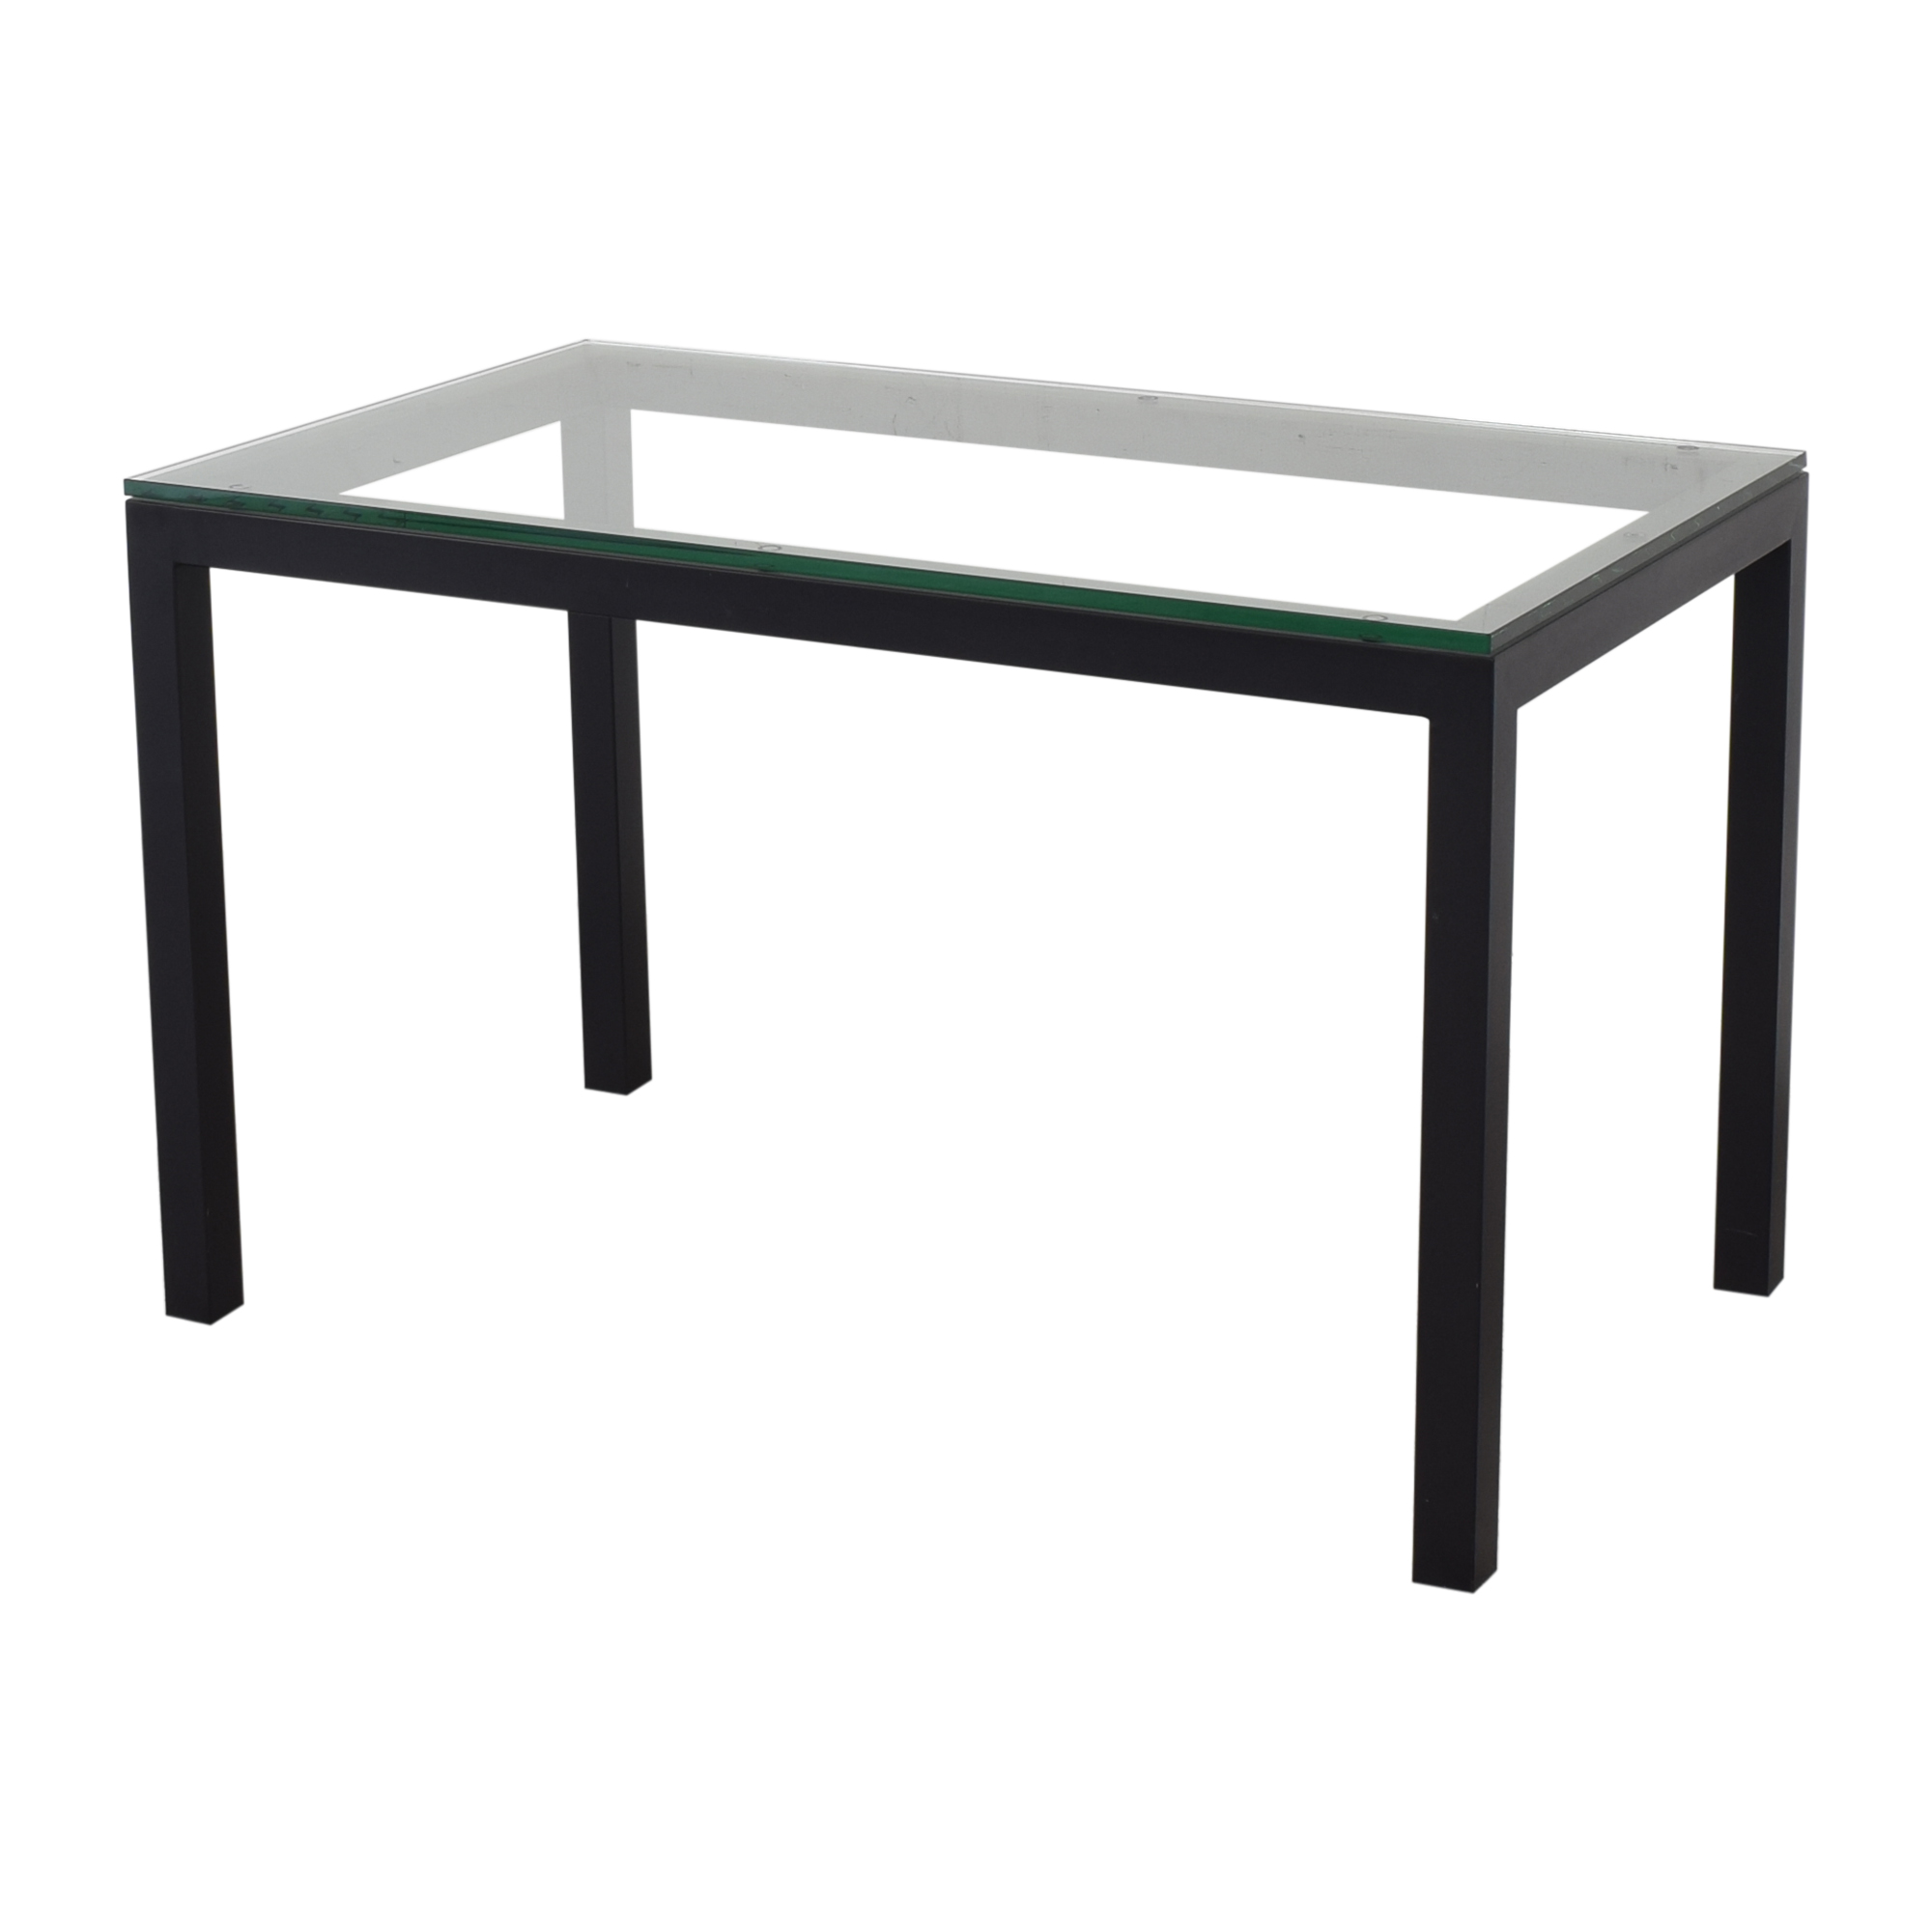 Crate & Barrel Crate & Barrel Glass and Steel Parsons Table price